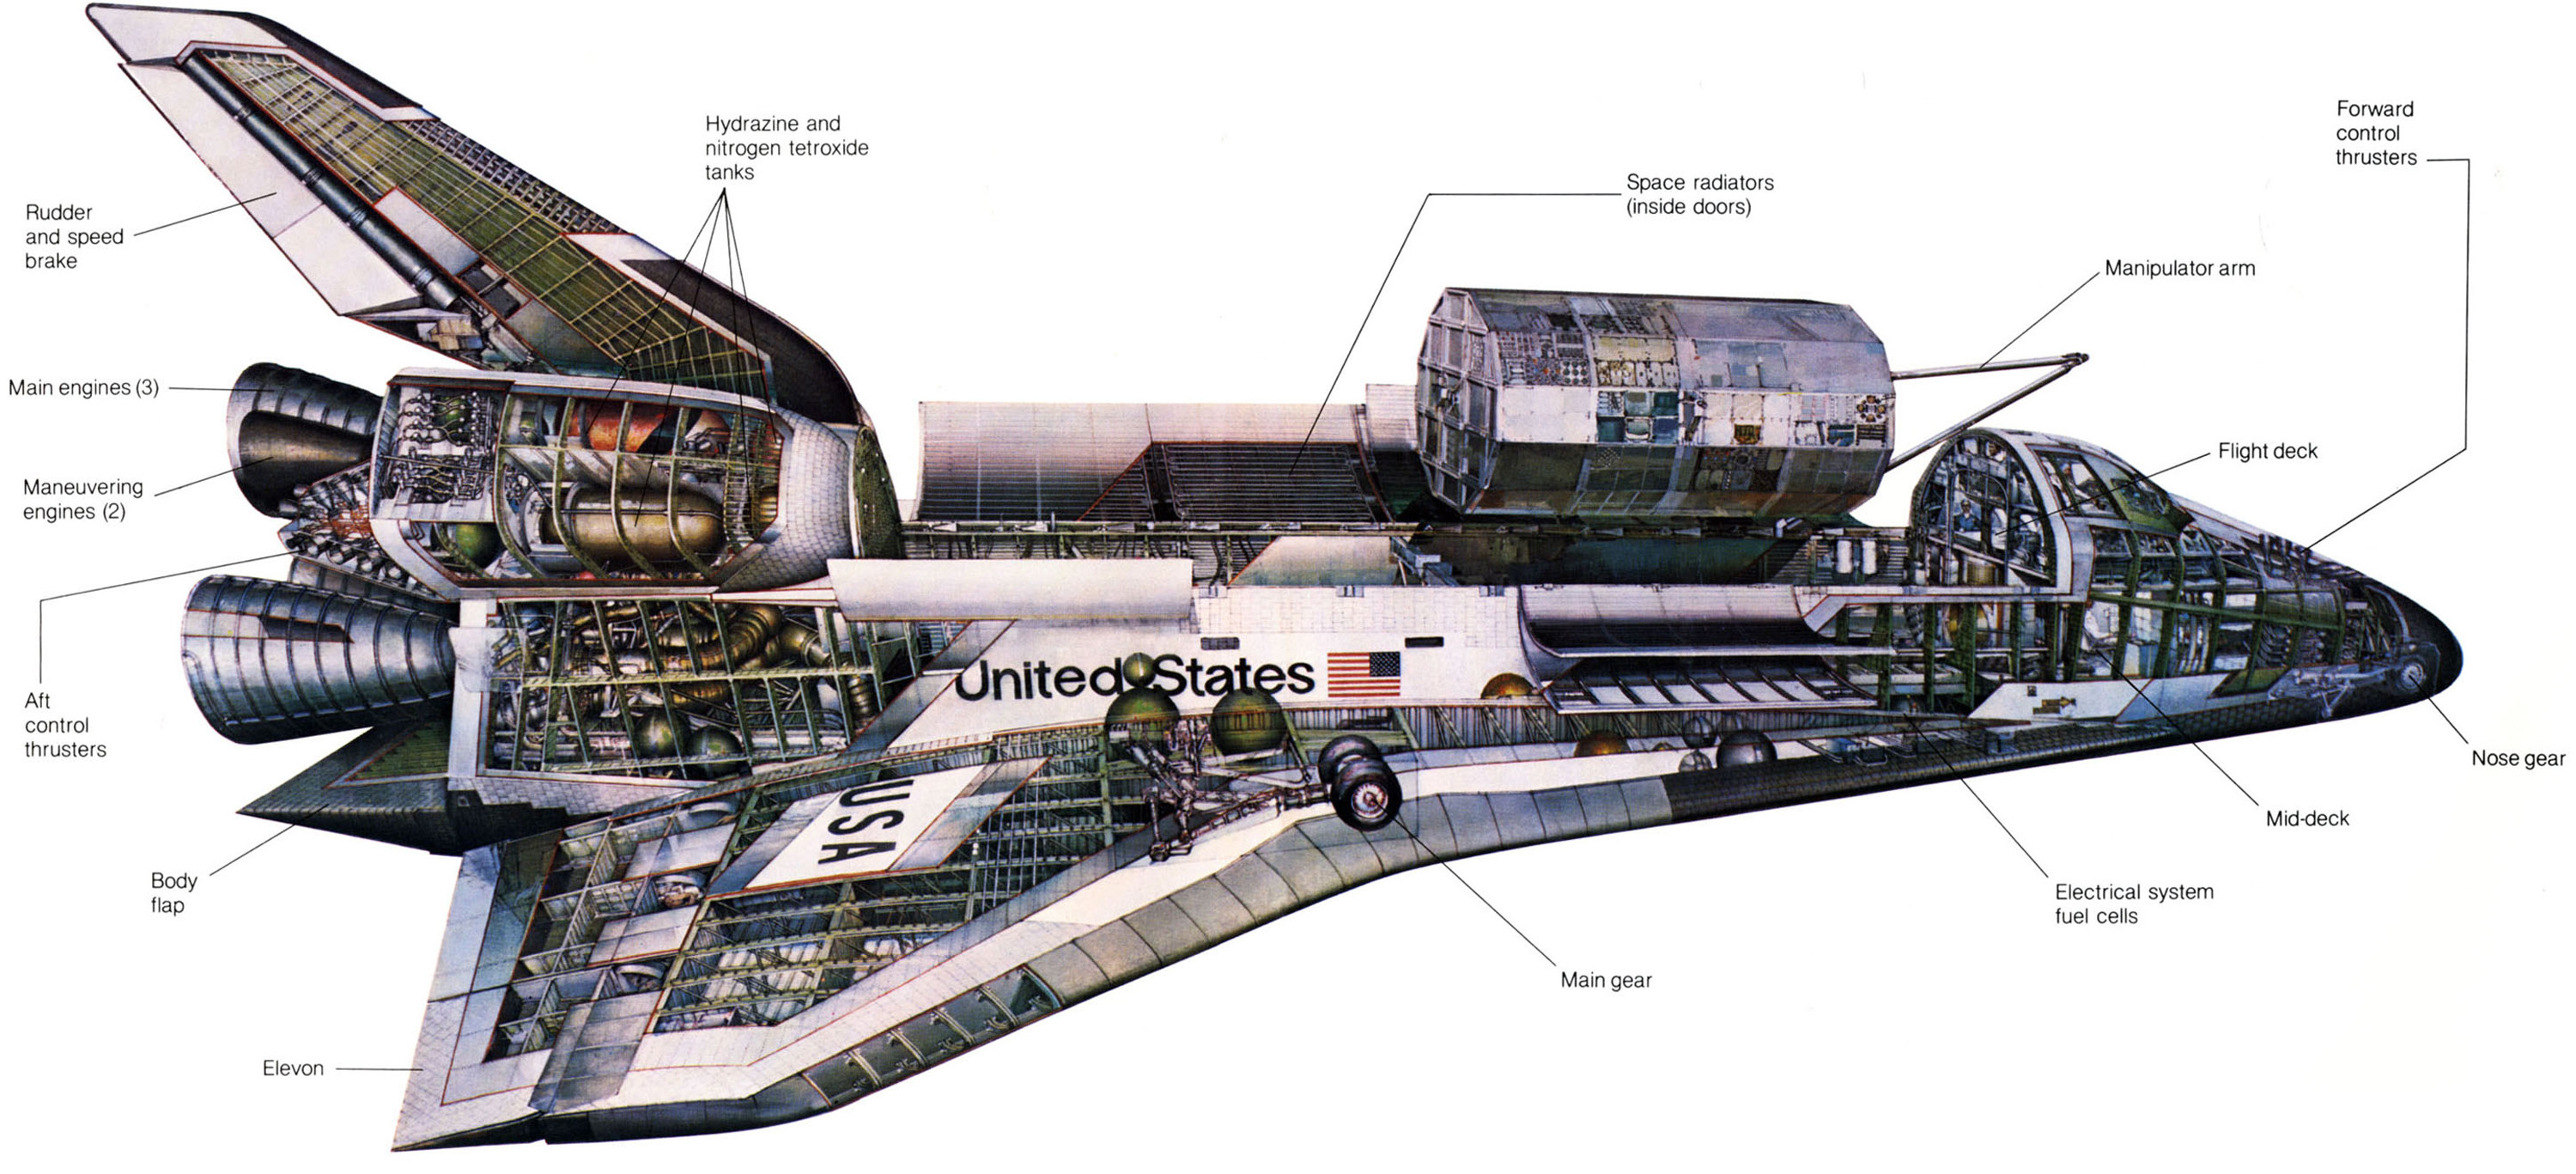 3000x1367 The End of the Space Shuttle Program and the Arrival of Orion | Space  shuttle, Cutaway and Spaces